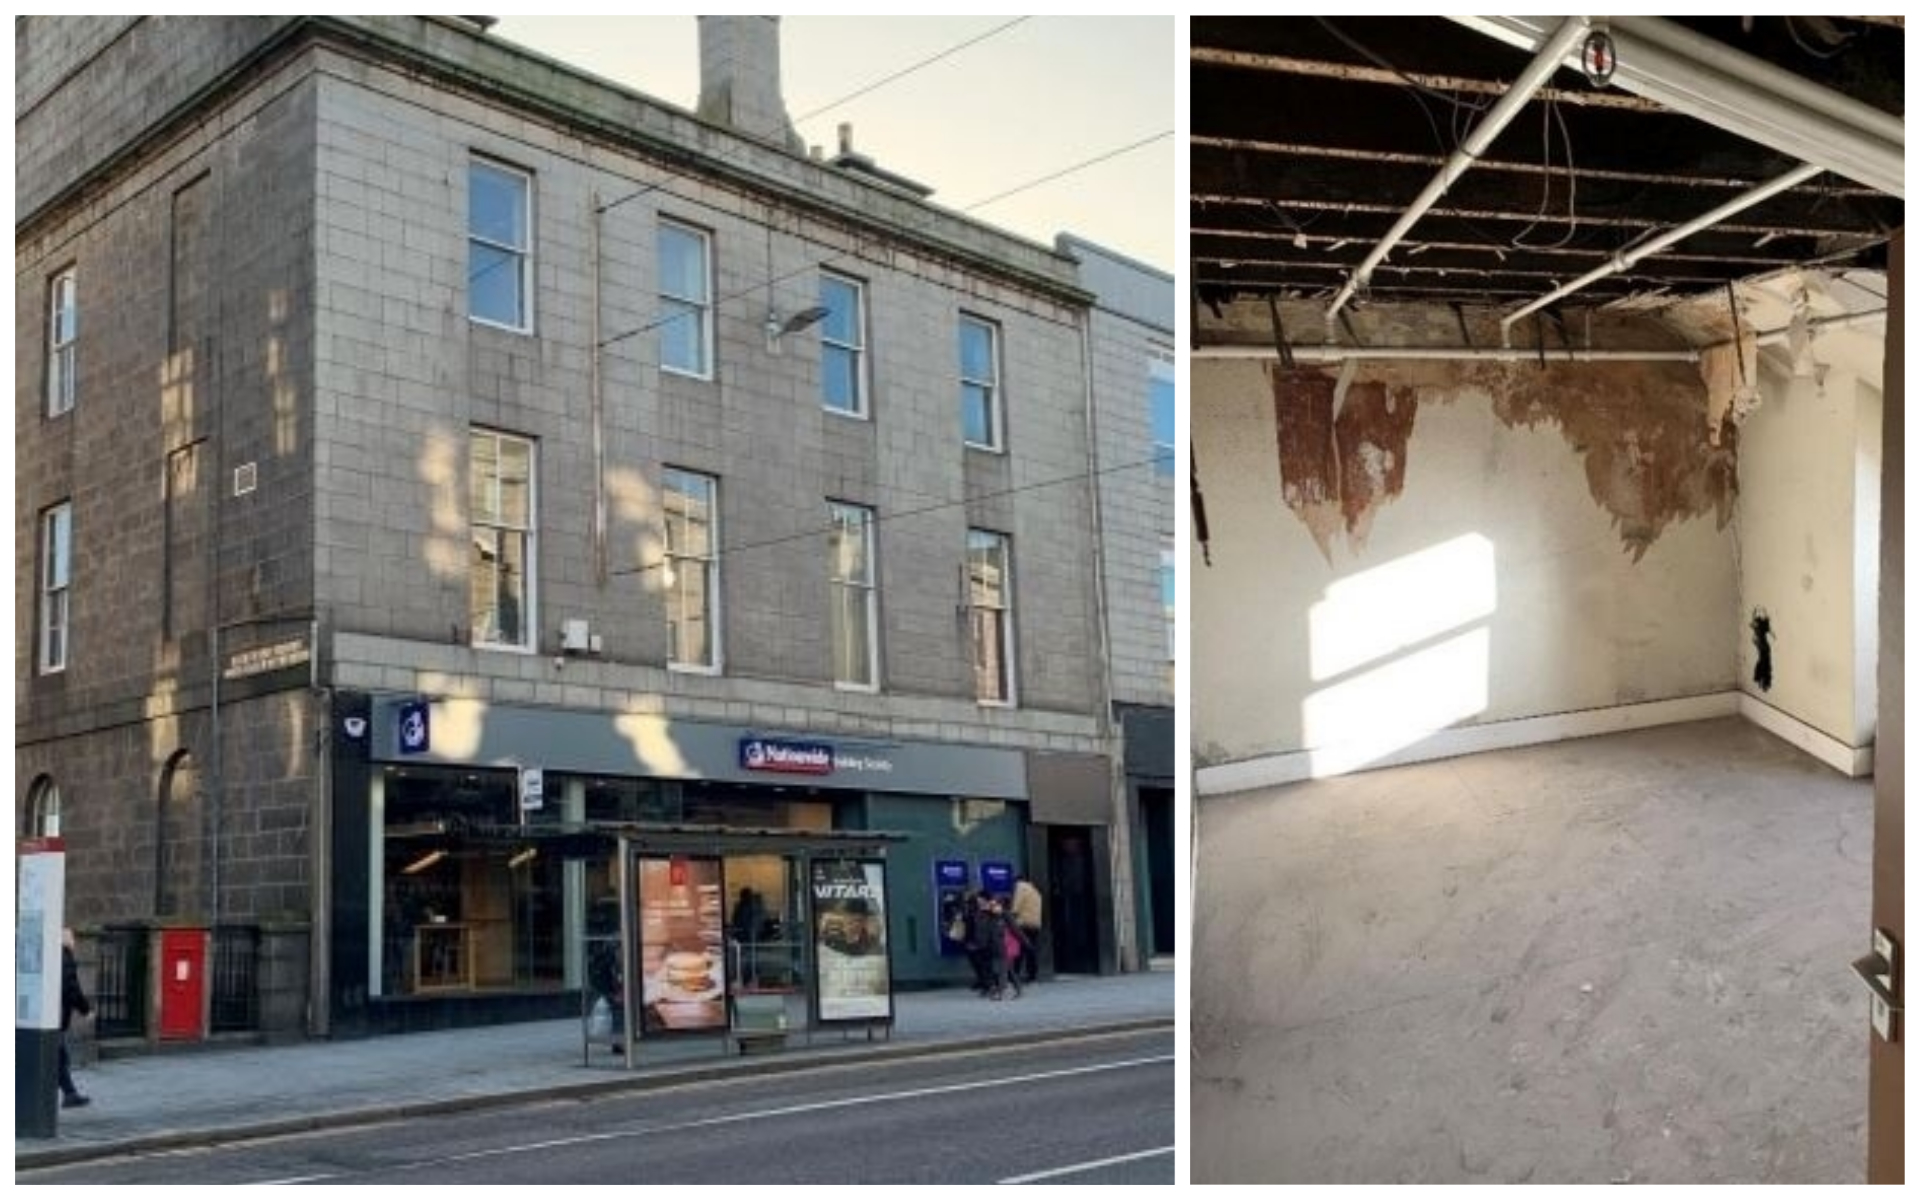 Plans have been lodged to turn the office space at 133 Union Street into flats.